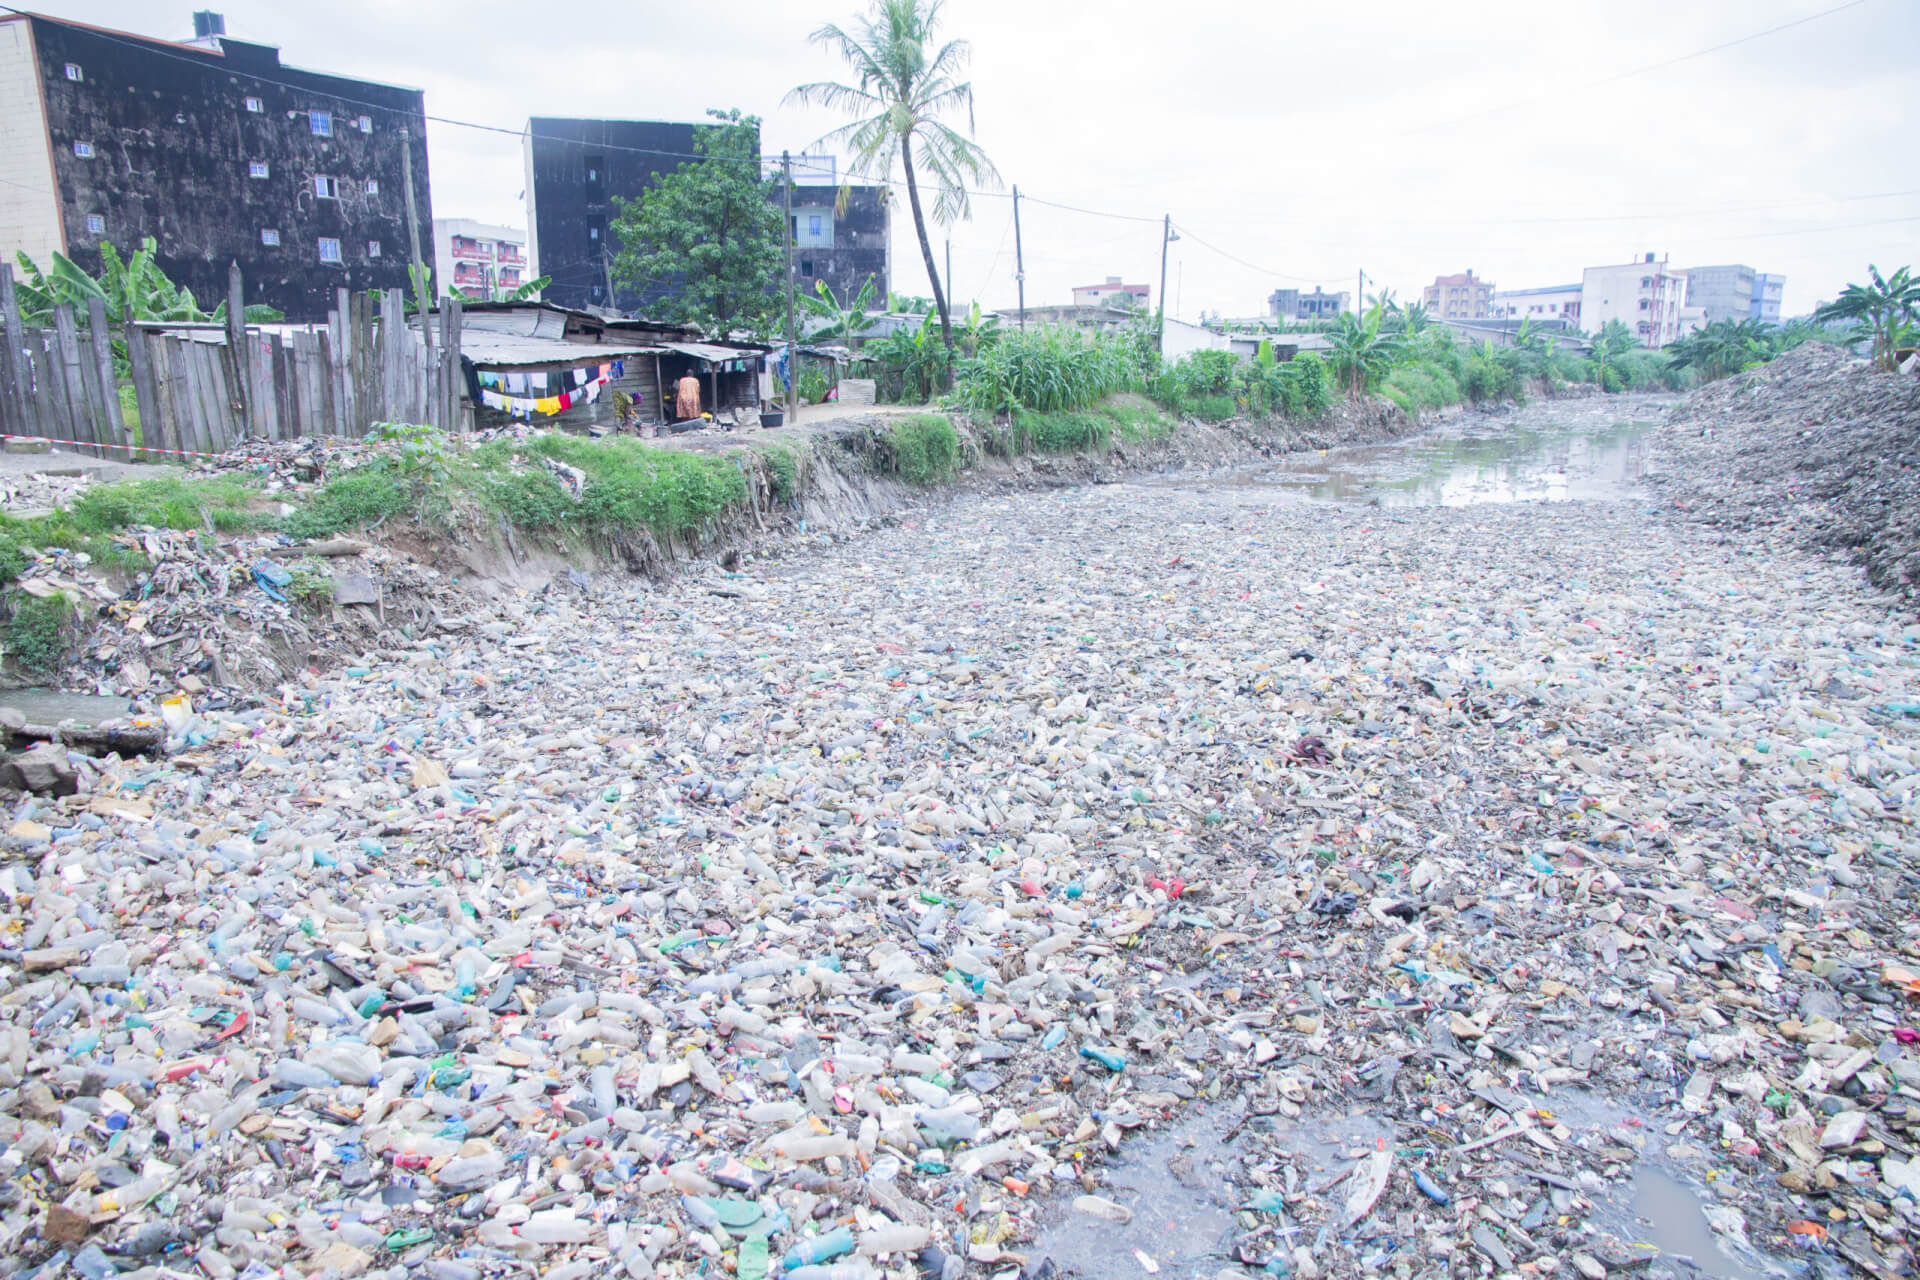 Rivers full of plastic waste flow through Douala and out to the Atlantic Ocean